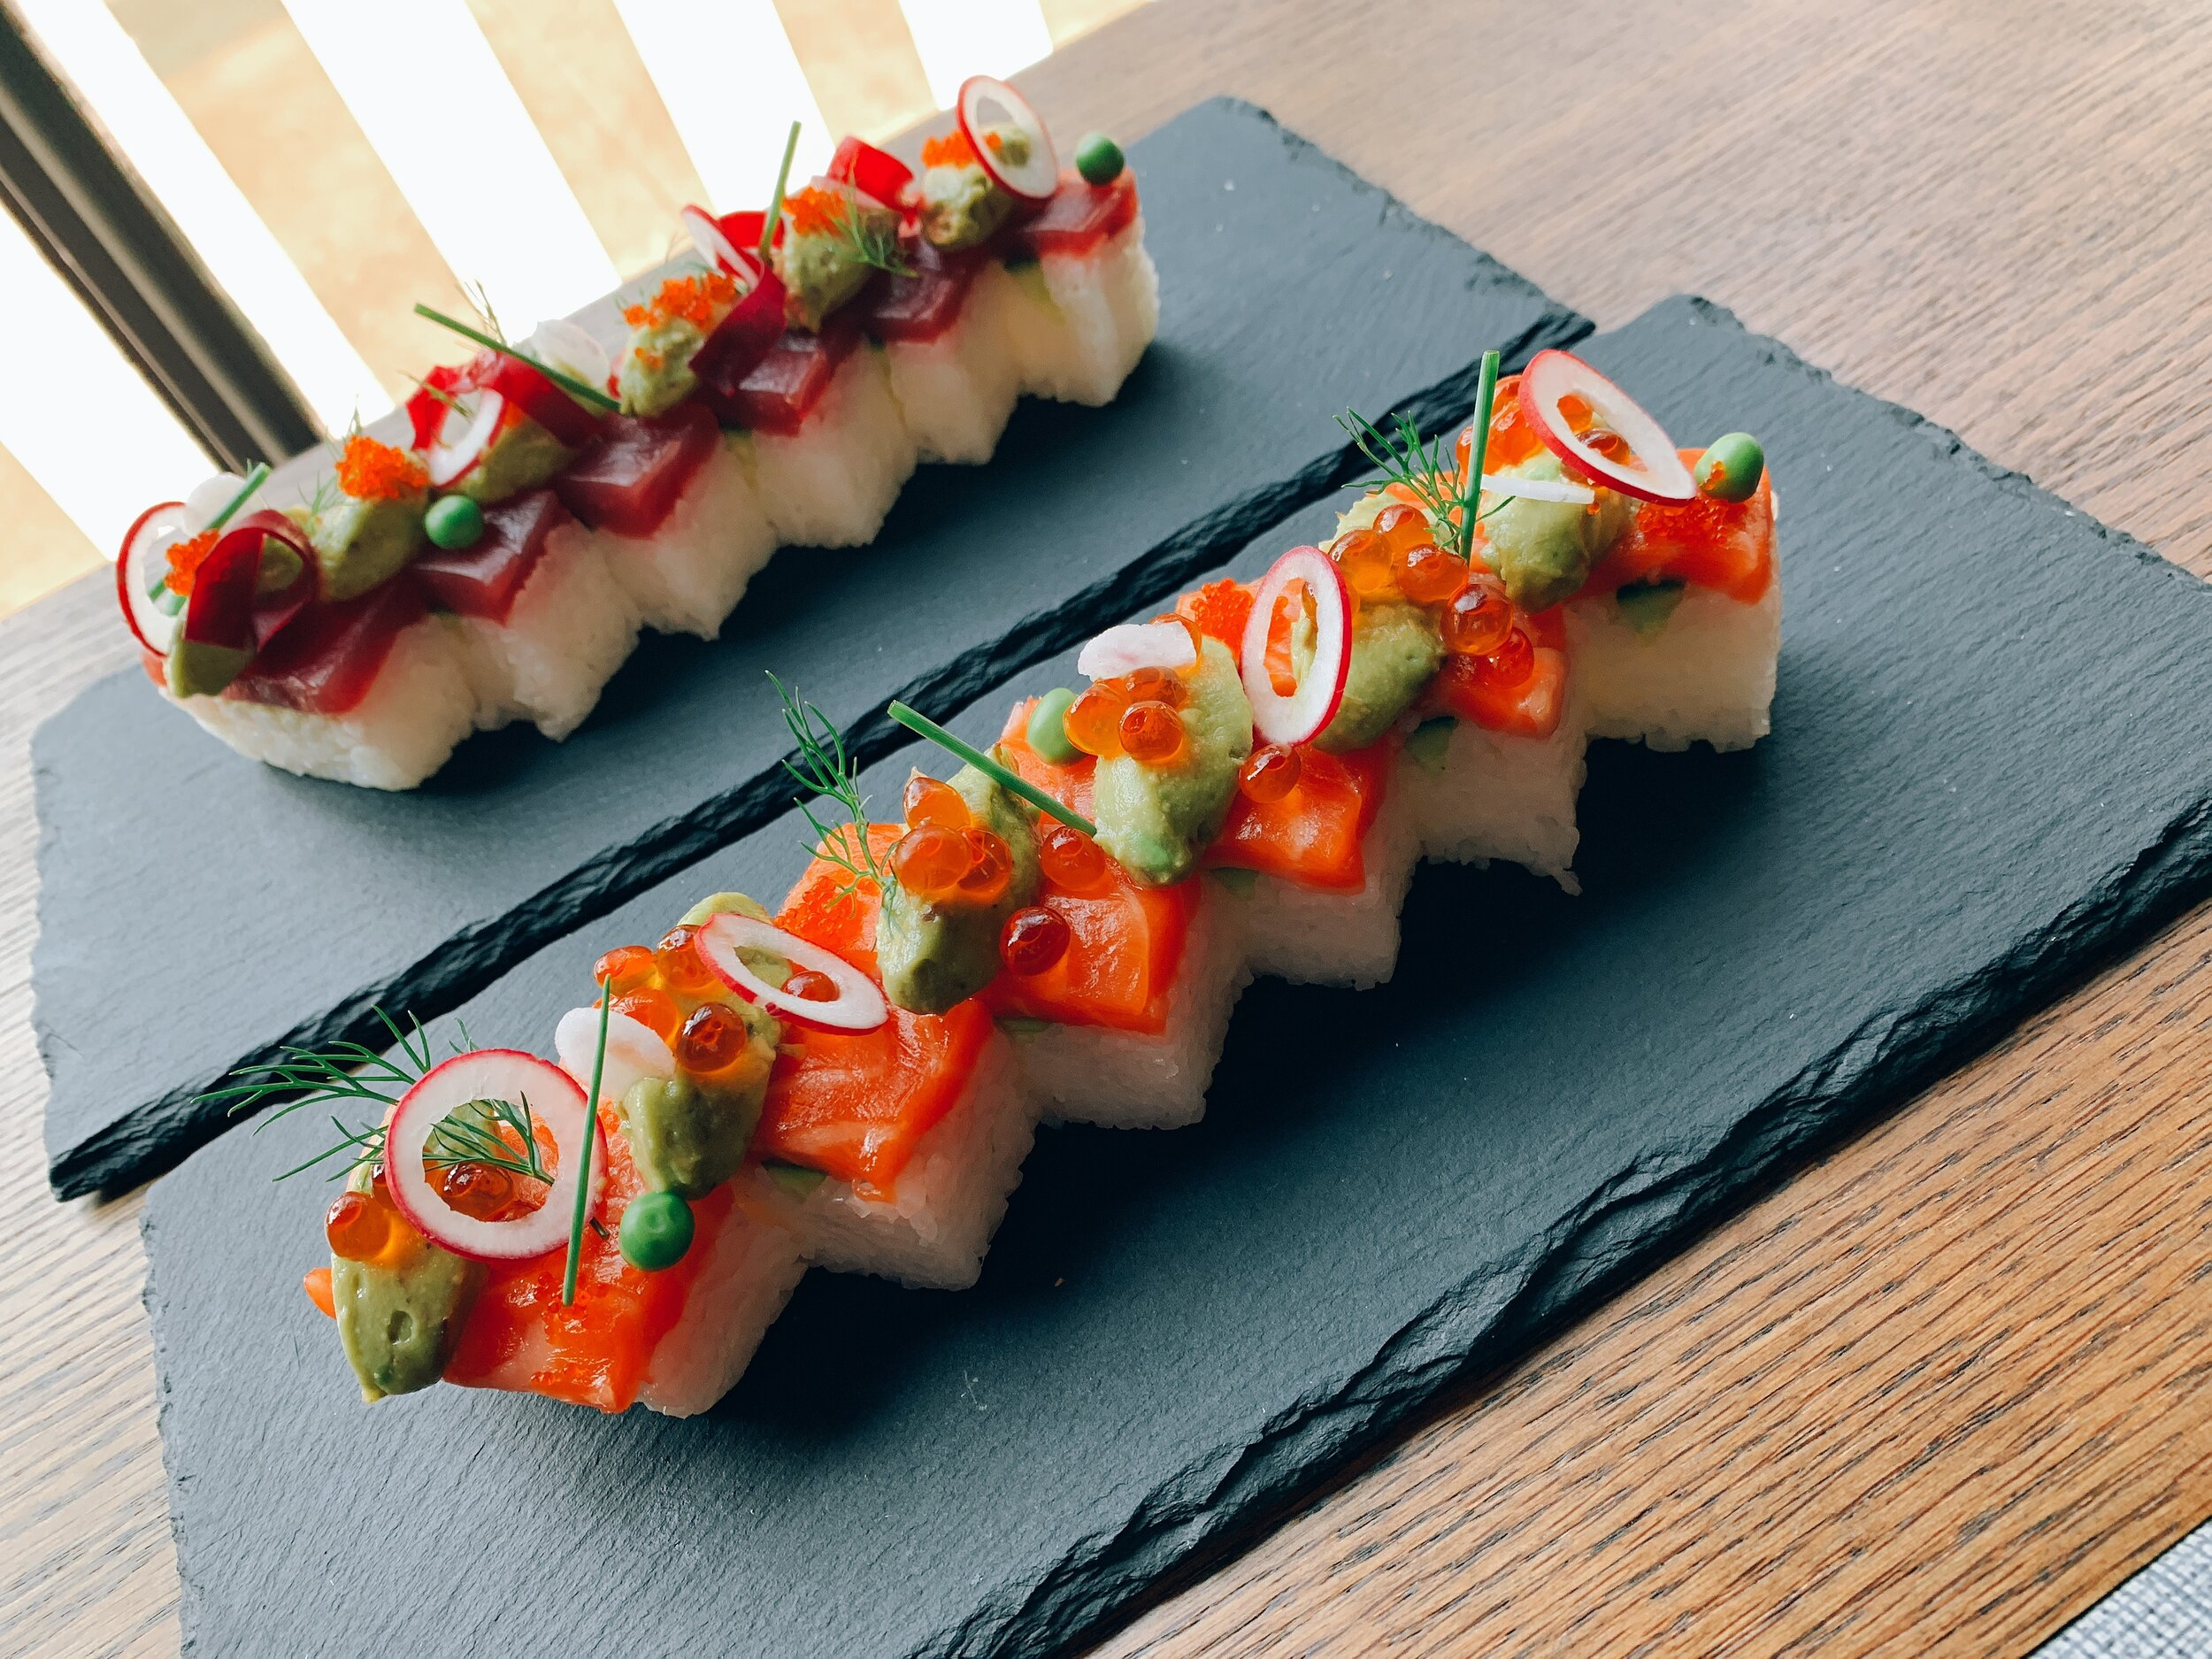 PRESSED SALMON AVOCADO ROLL (Oshi sushi)